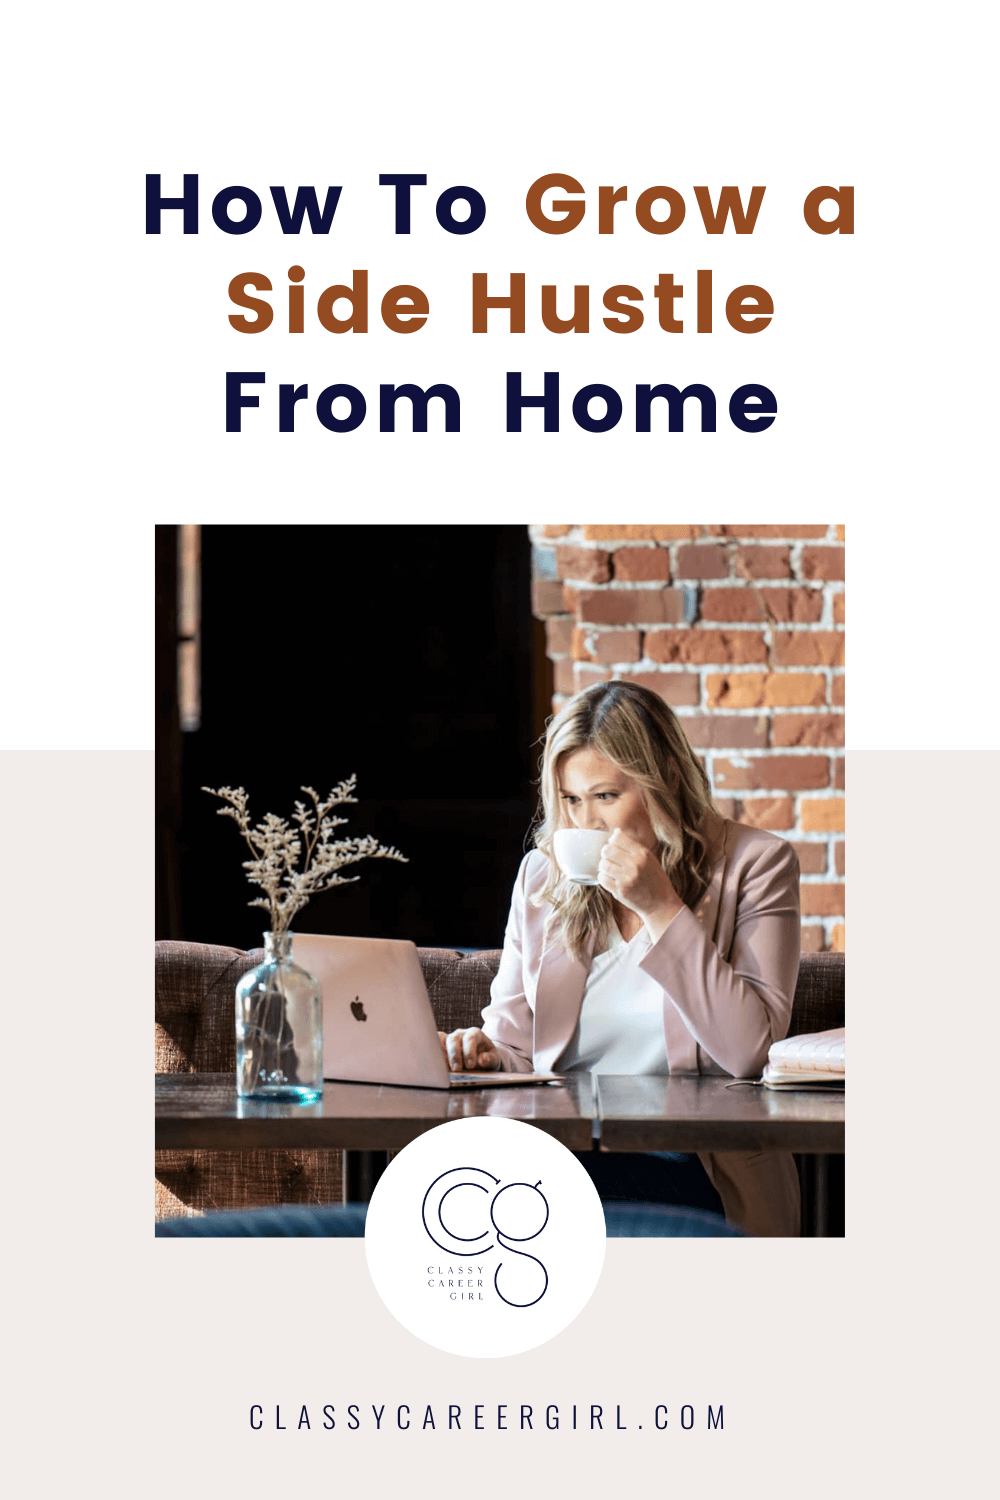 How To Grow a Side Hustle From Home